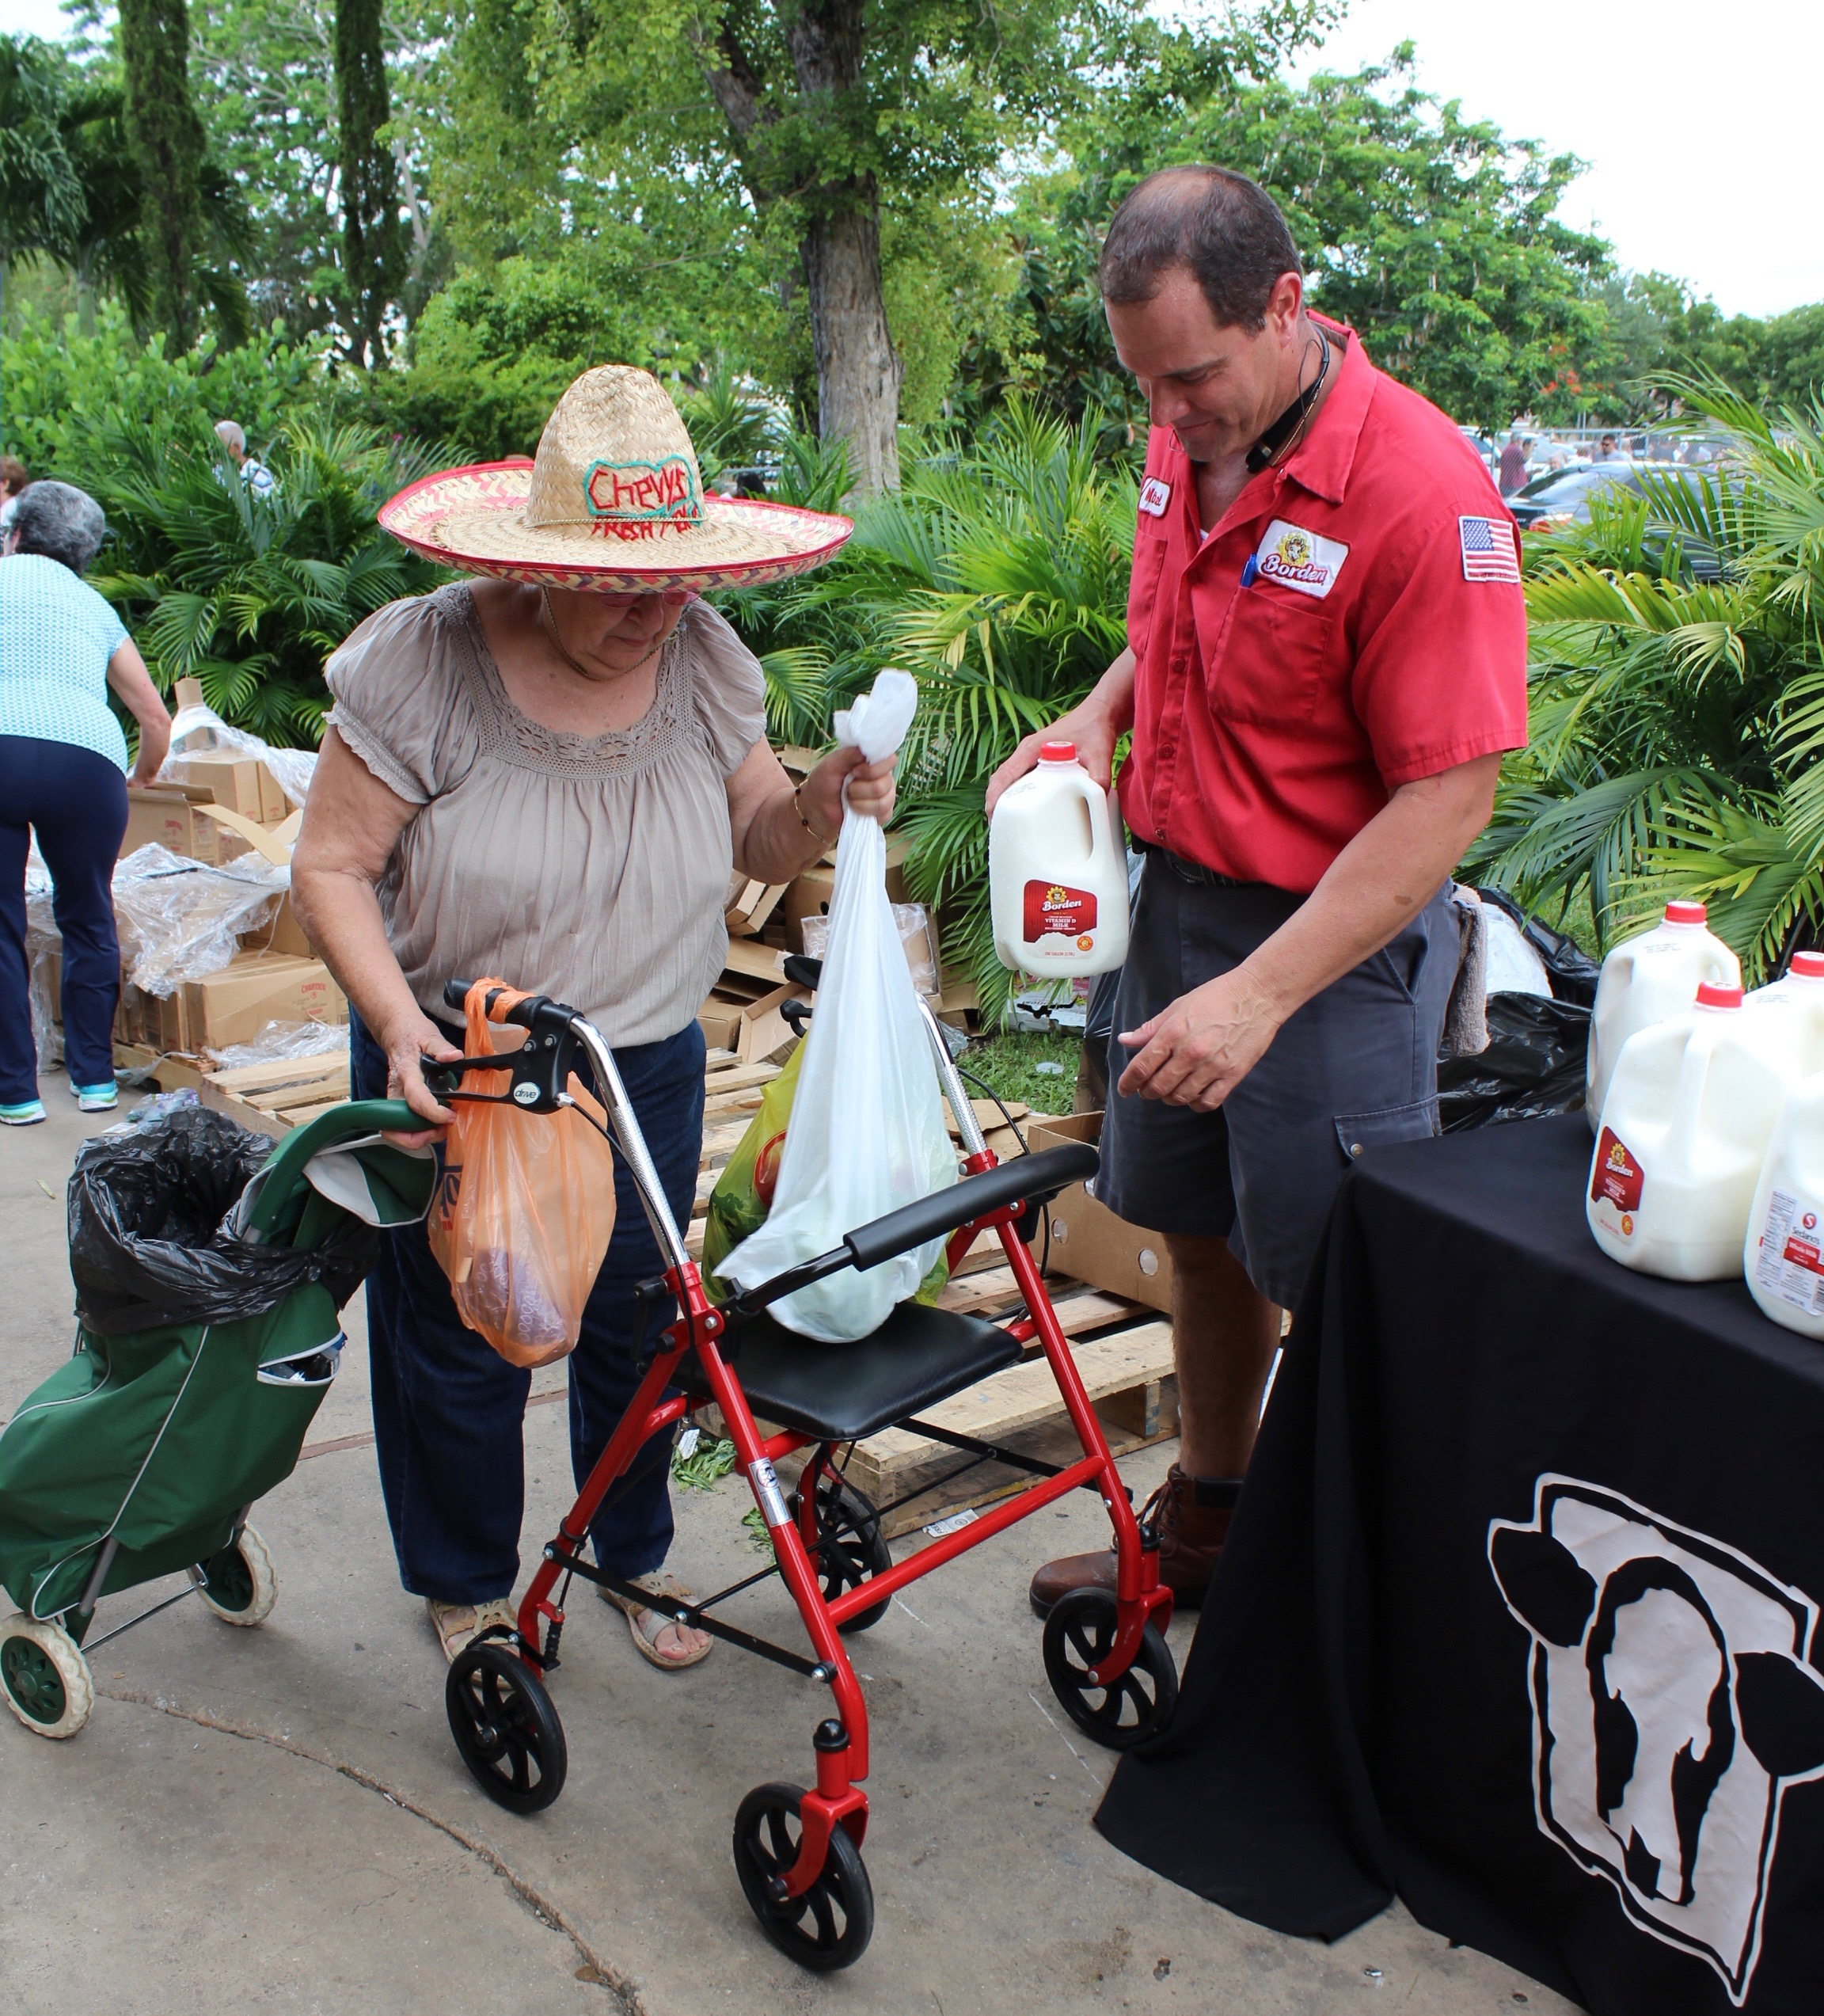 'Summer Hunger Ends Here' Great American Milk Drive raises $17,000 to provide 6,000 gallons of milk